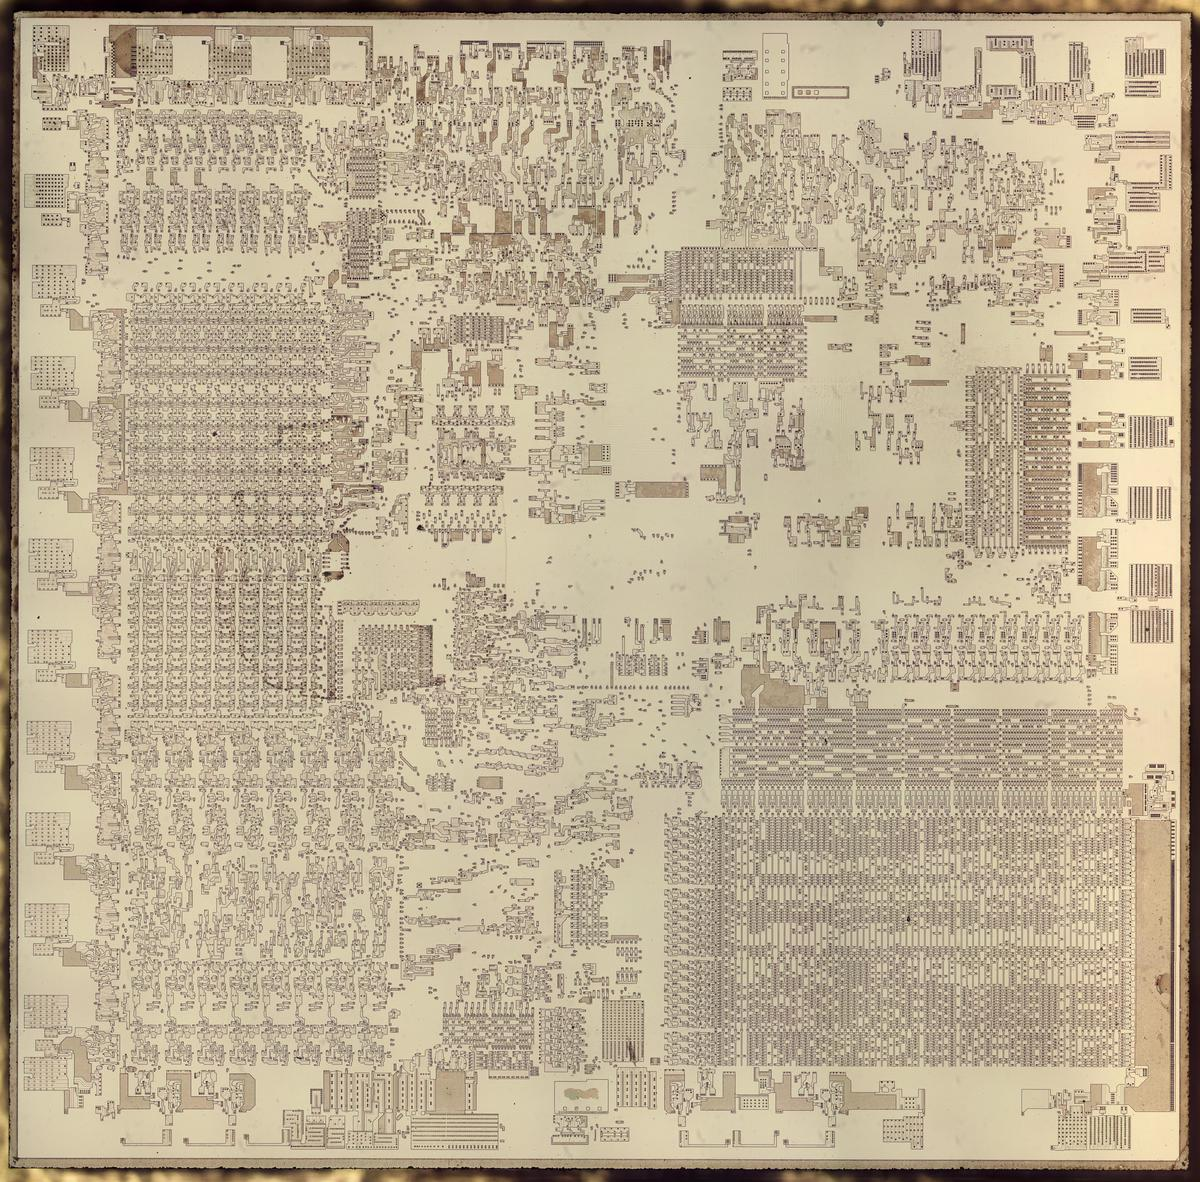 Die photo of the Intel 8086 processor. The metal and polysilicon have been removed to reveal the underlying silicon.